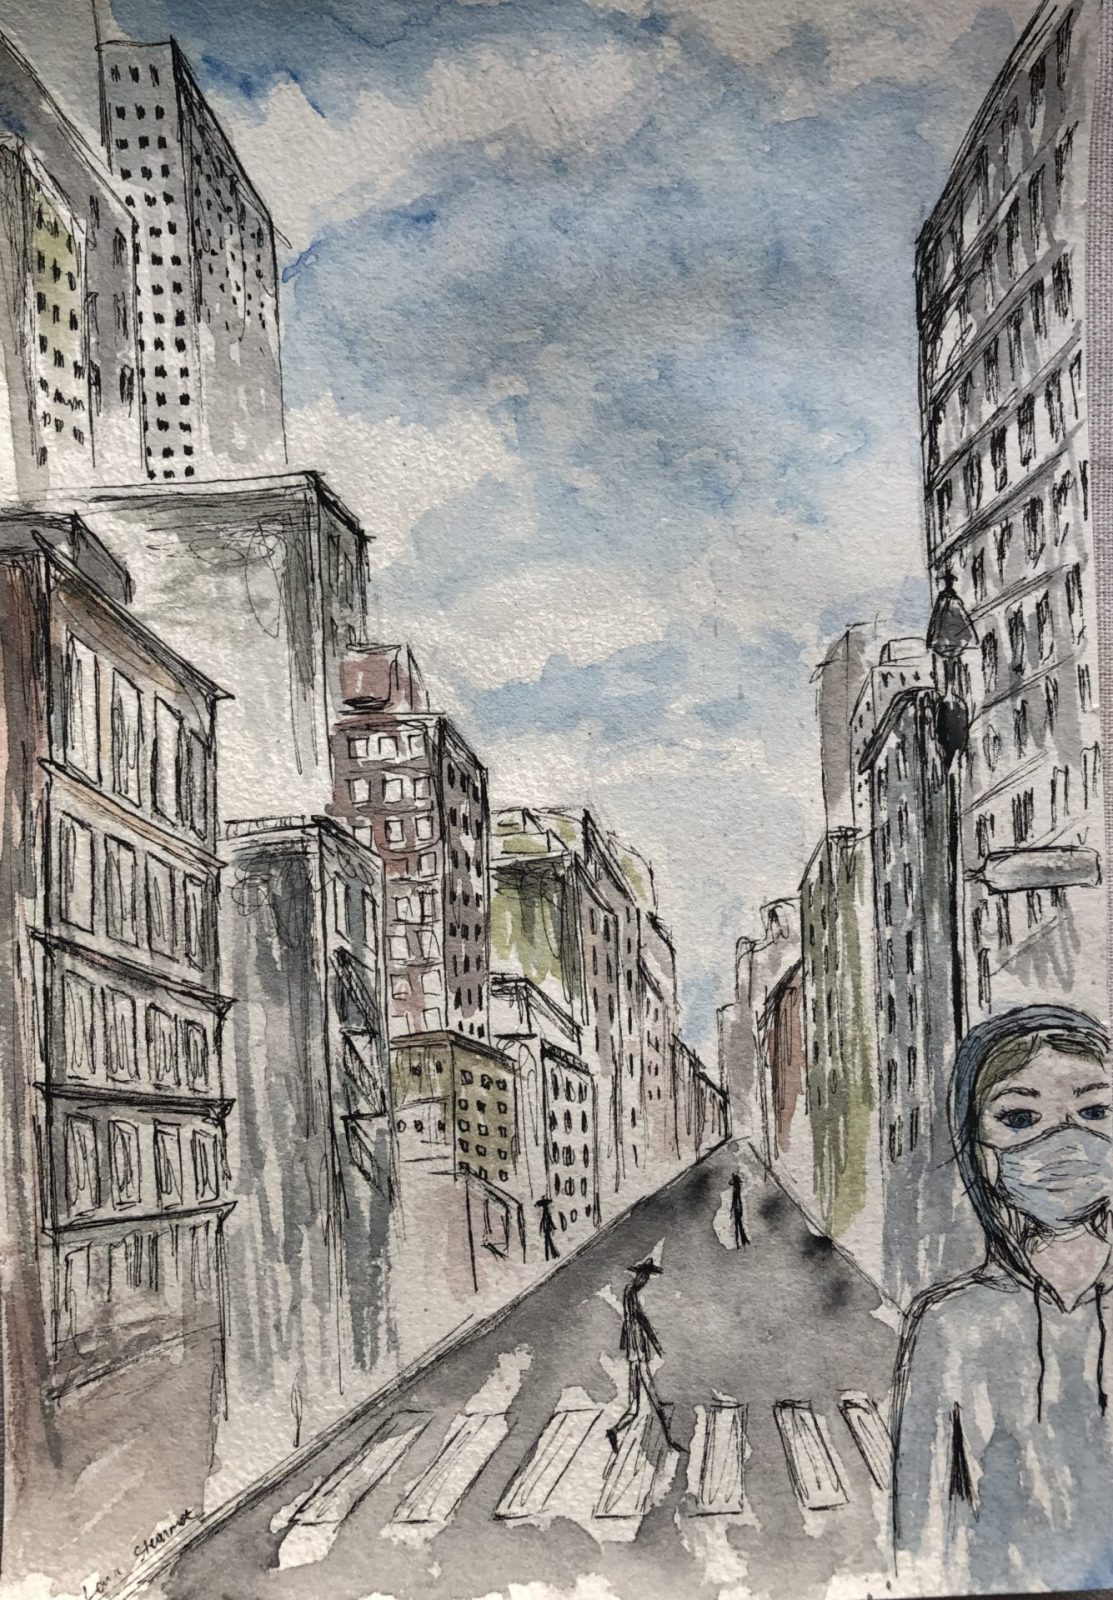 'New York' - Lena Steinmetz (Q1d)